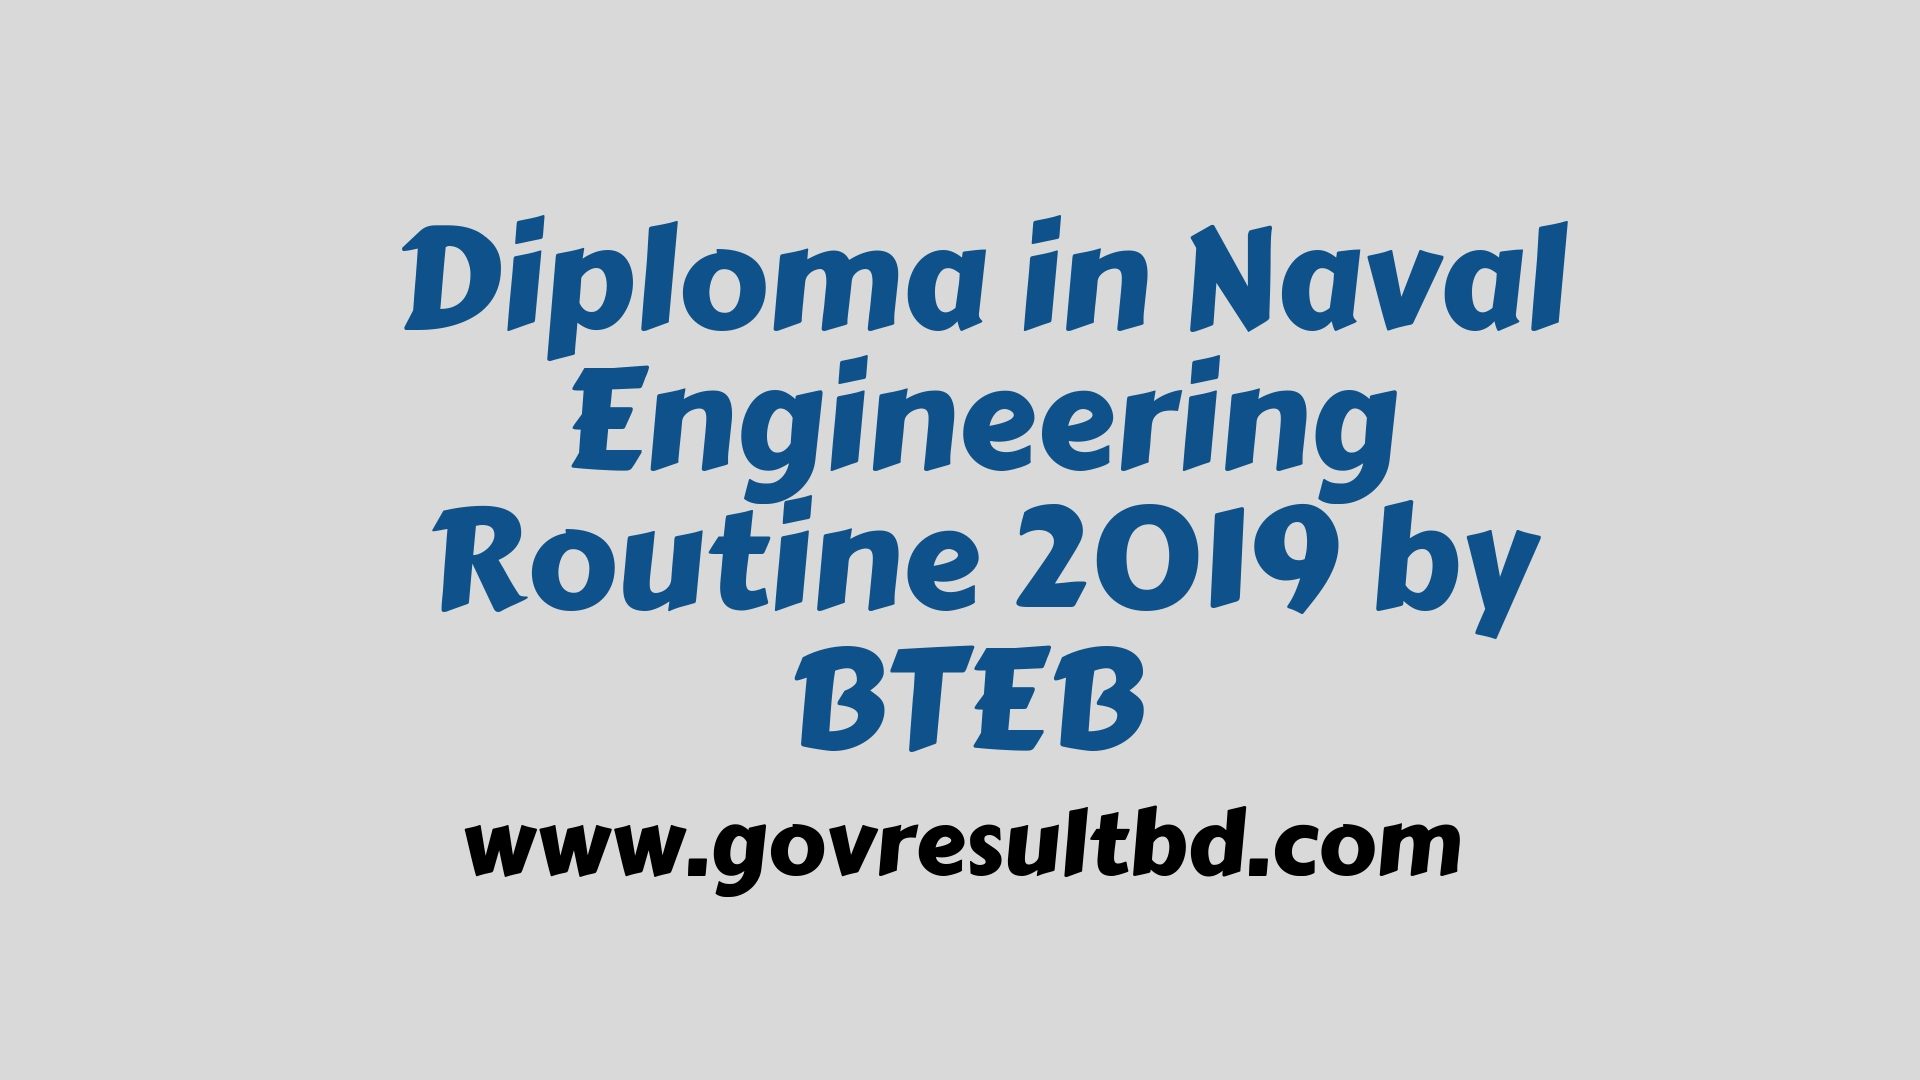 Diploma in Naval Engineering Routine 2019 by BTEB